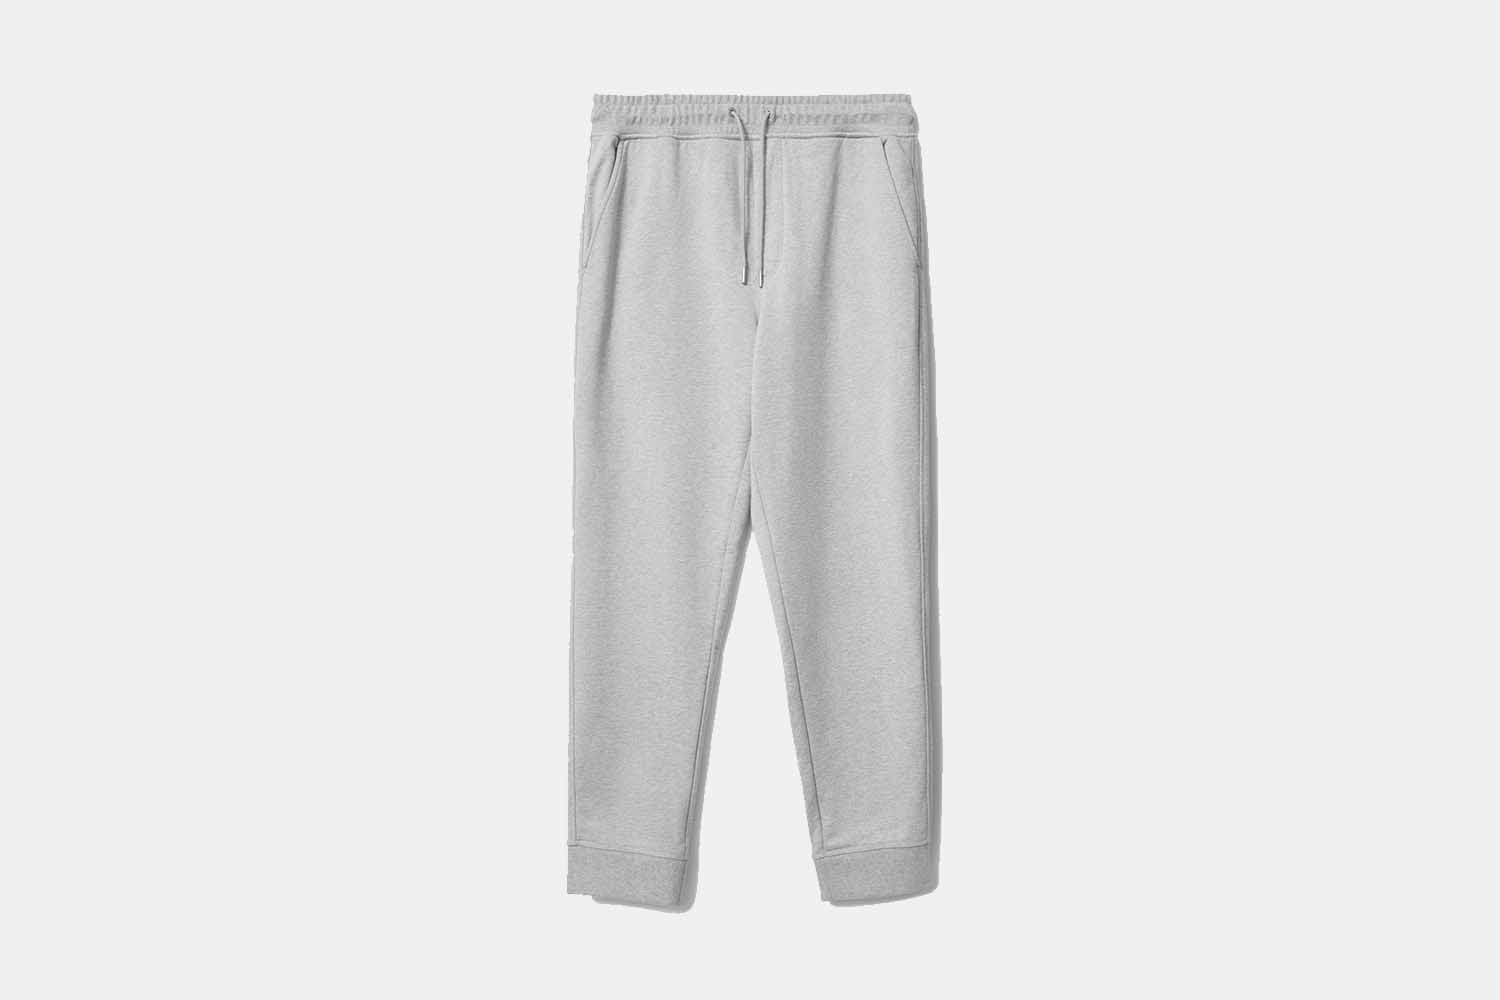 Everlane The French Terry Sweatpant